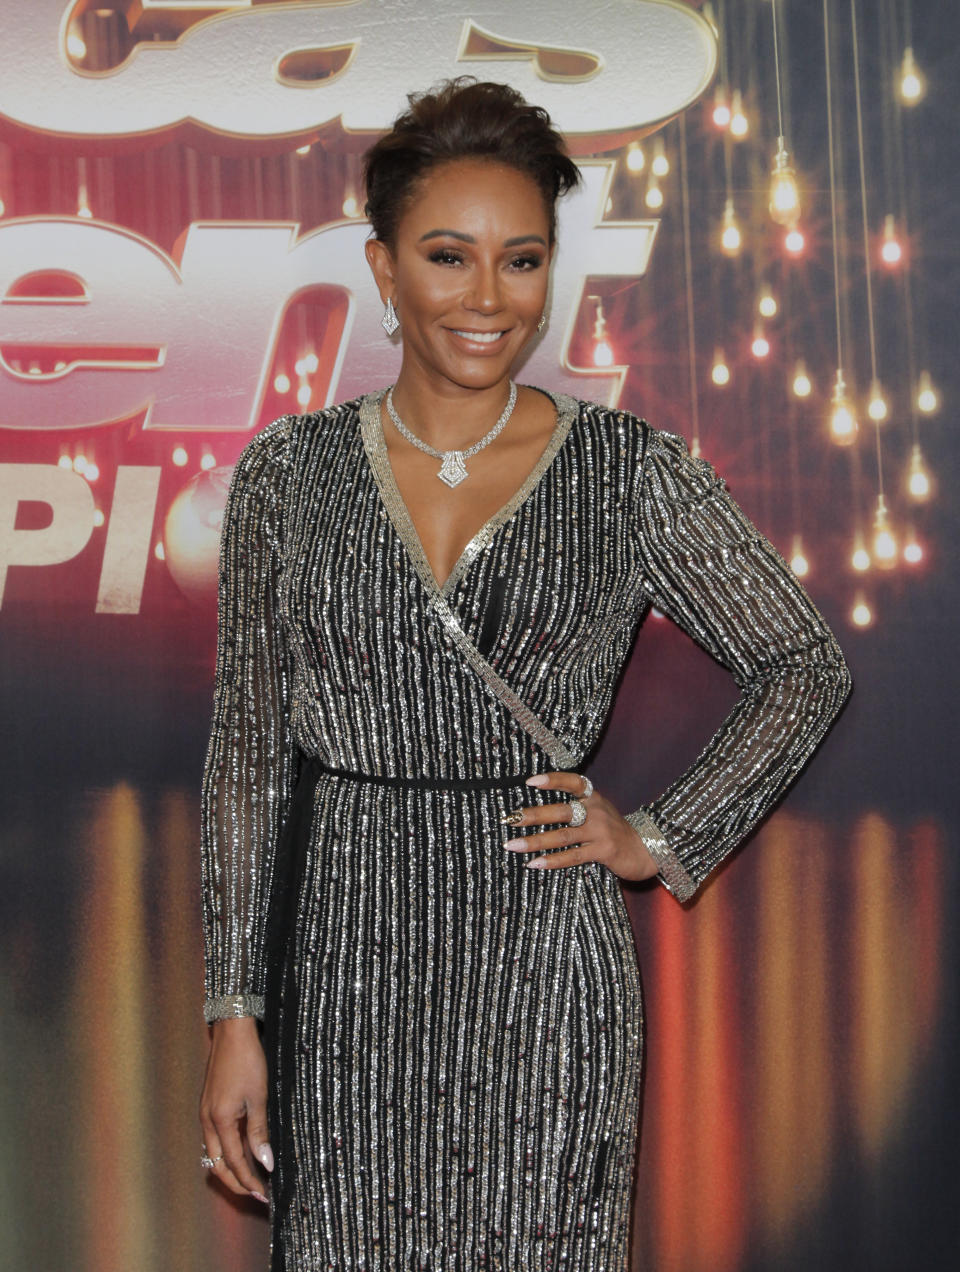 Mel B attends the 'America's Got Talent: The Champions' Finale in 2018 in a sparkly dress